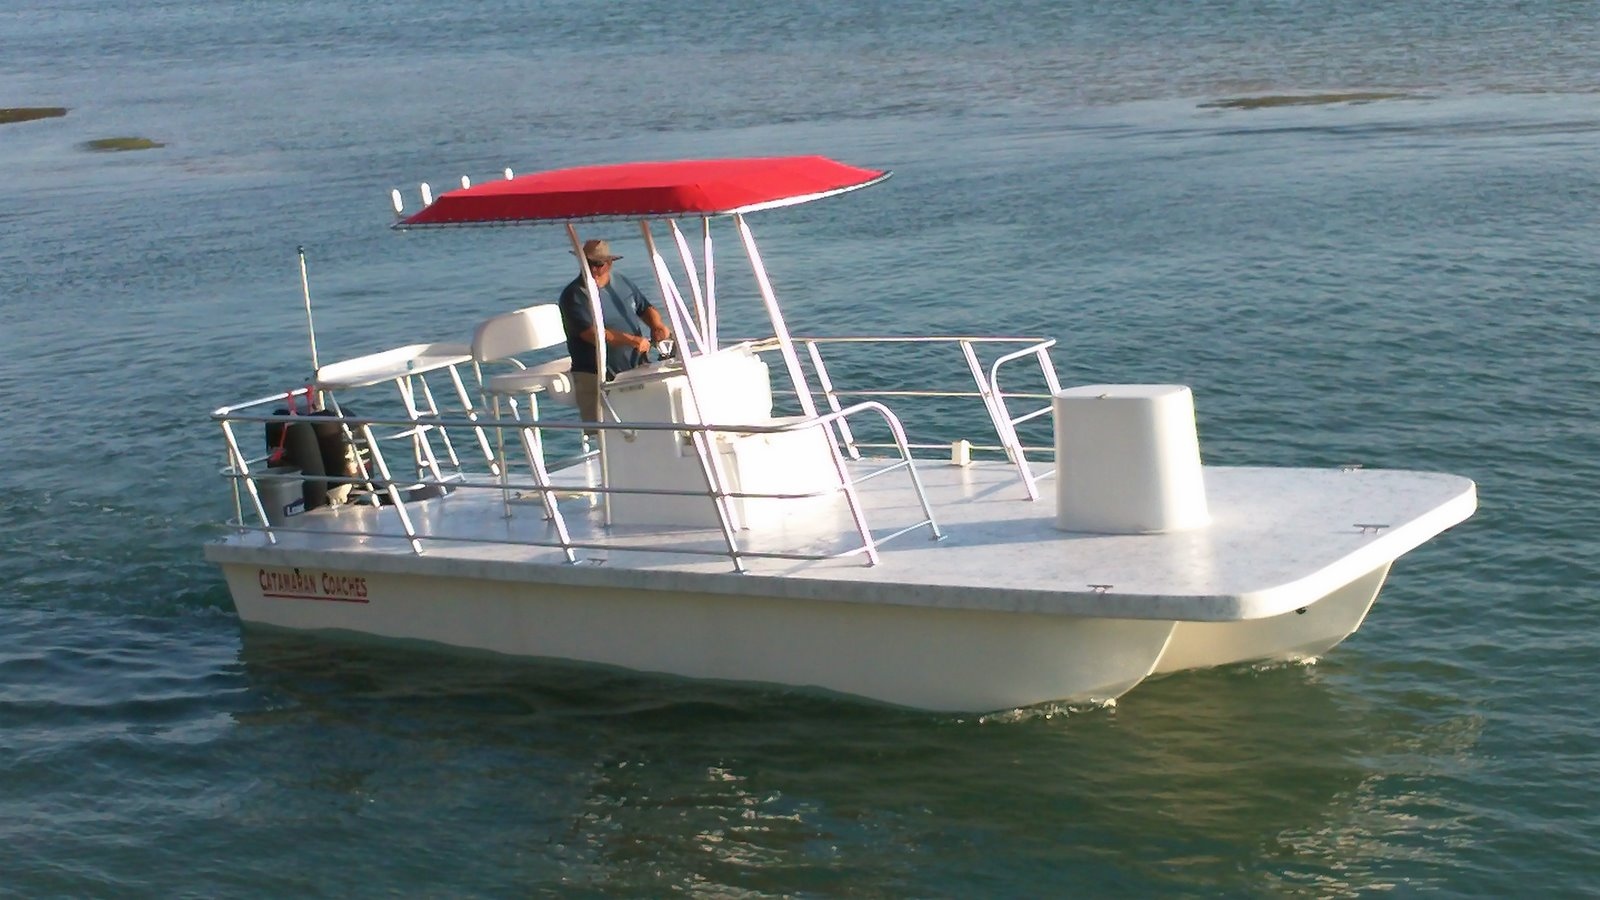 Catamaran coaches pontoon boats may 2011 for Party boat fishing near me